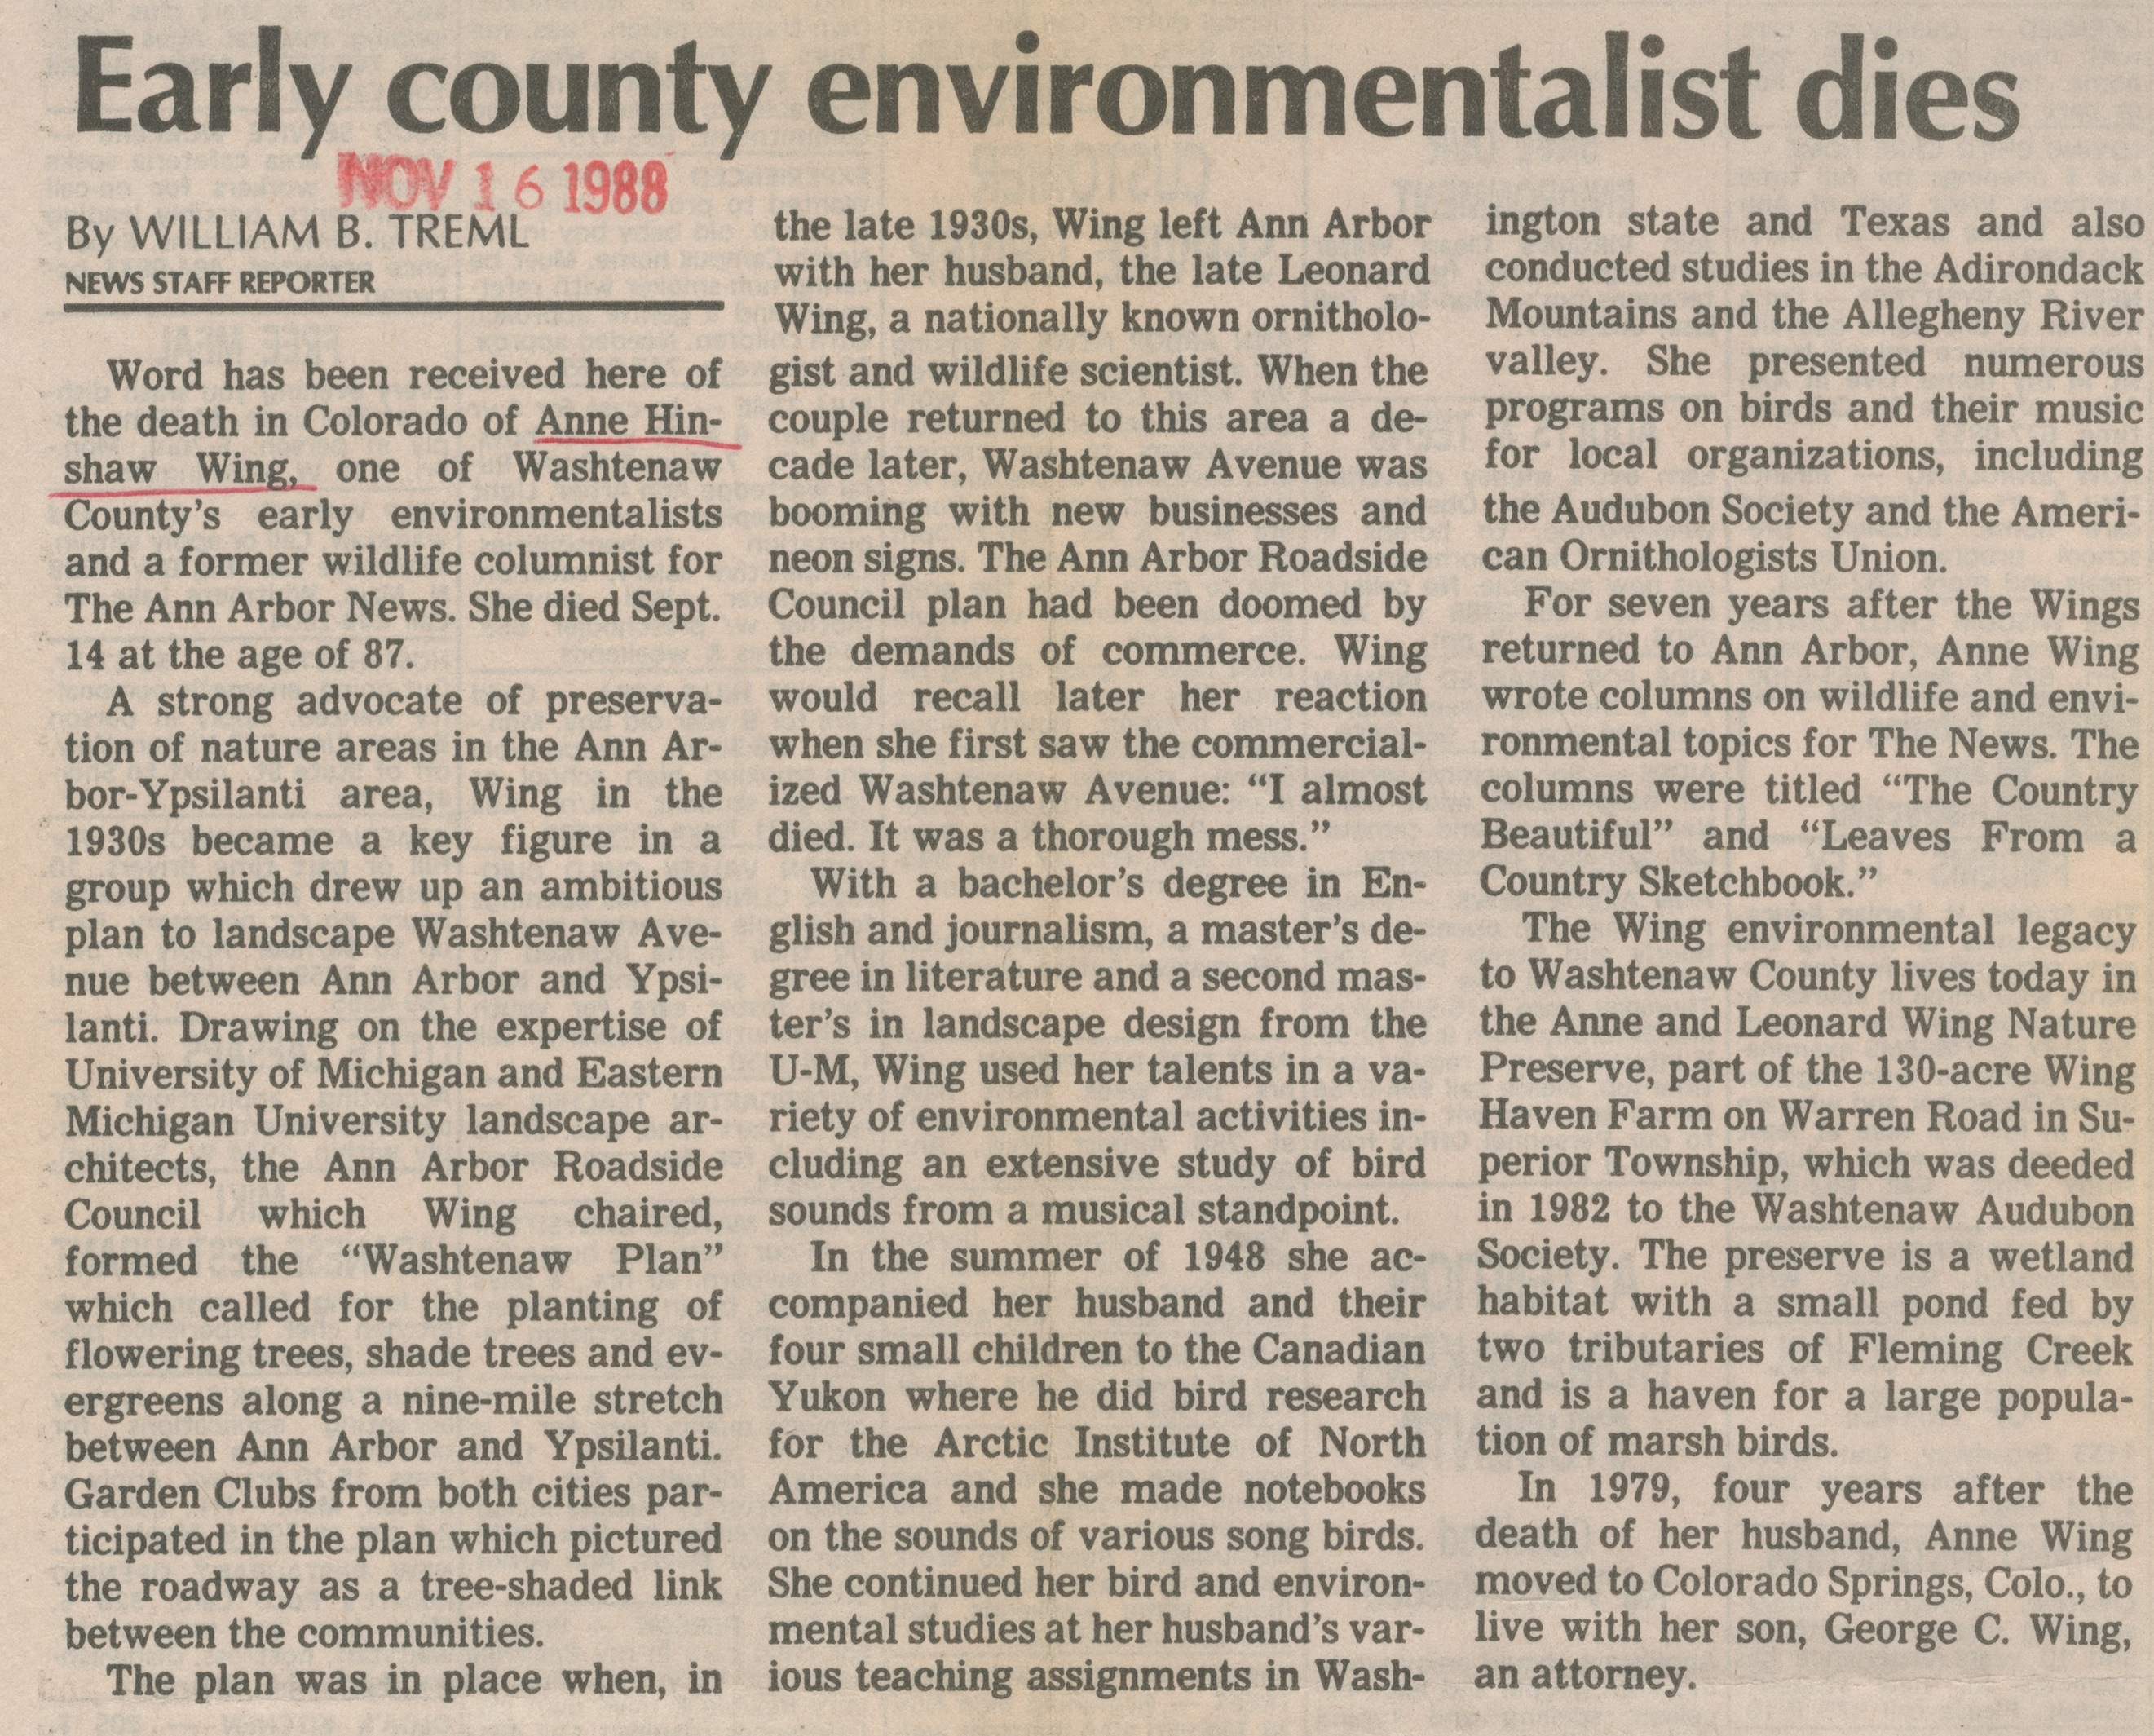 Early County Environmentalist Dies image